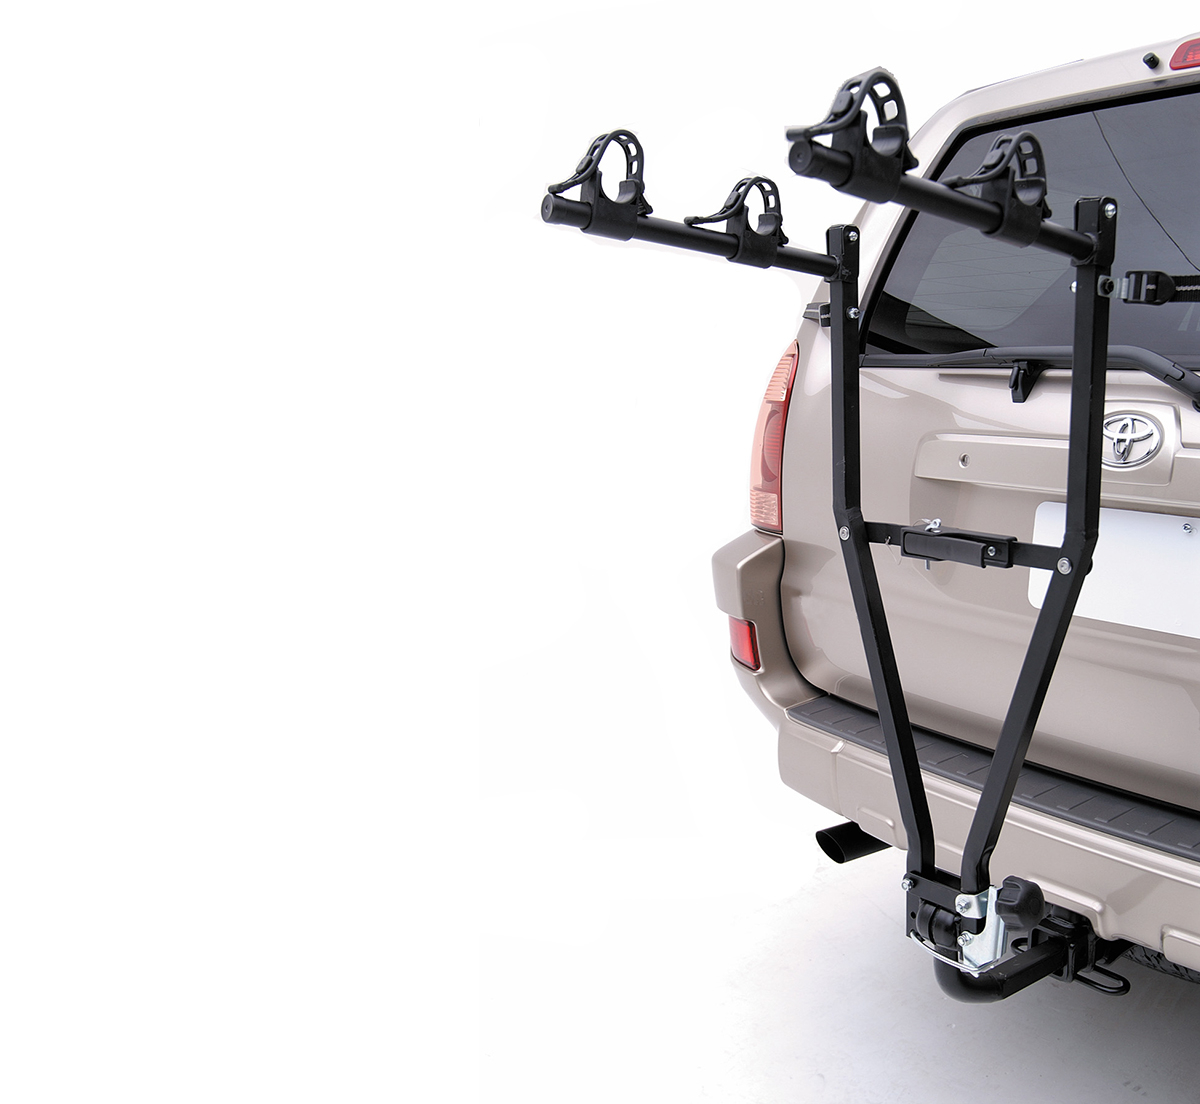 HOLLYWOOD HR150 2 BIKE TOWBALL CAR RACK: